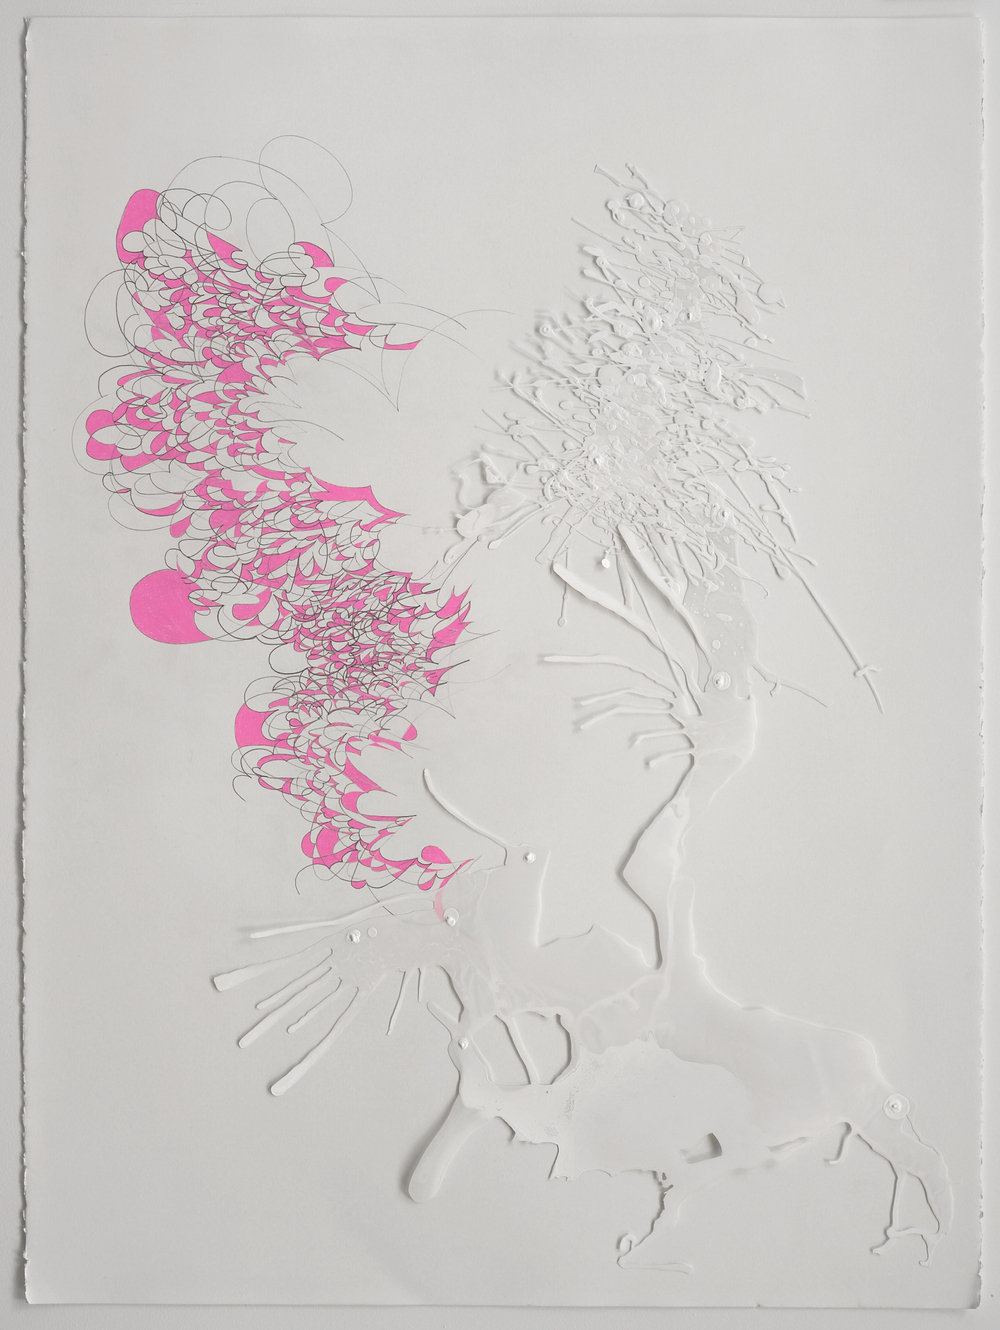 S wirling Pink,  2008  Acrylic on mylar and string, pencil and pen on paper  30 x 22 inches